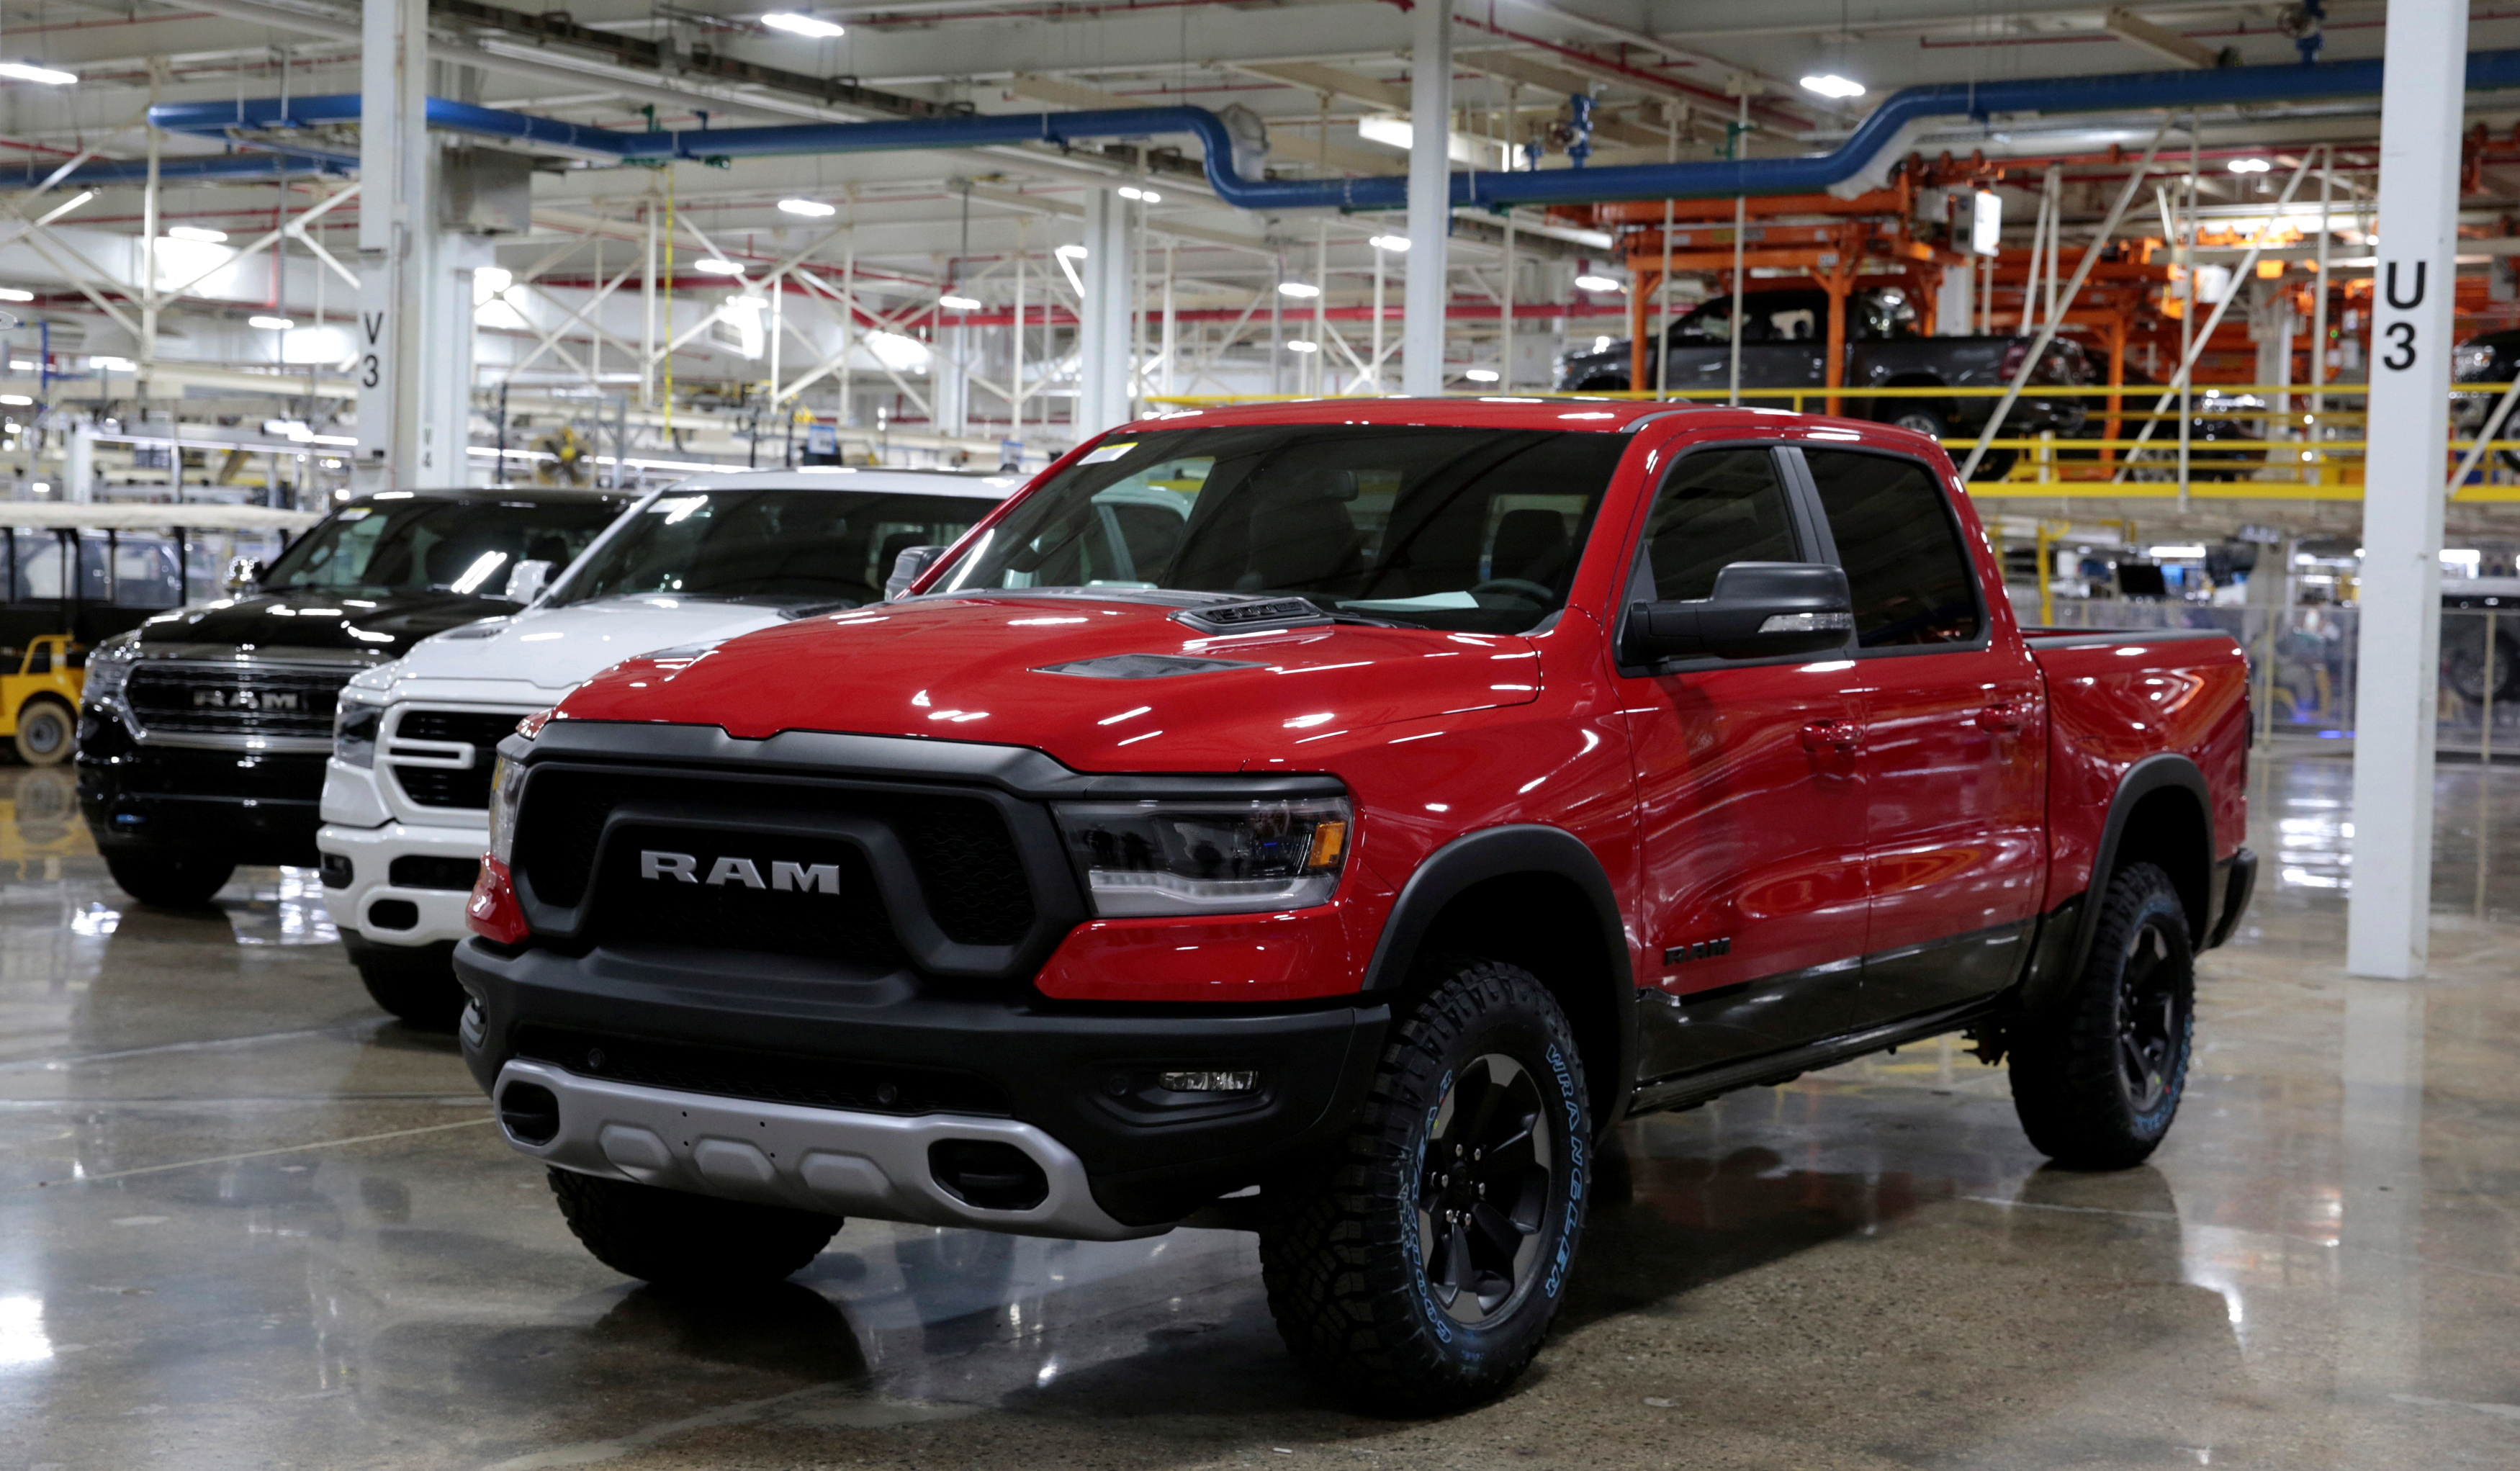 2019 Ram pickup trucks are on display at the Fiat Chrysler Automobiles (FCA) Sterling Heights Assembly Plant in Sterling Heights, Michigan, U.S., October 22, 2018. The former Fiat Chrysler is now Stellantis. REUTERS/Rebecca Cook/File Photo